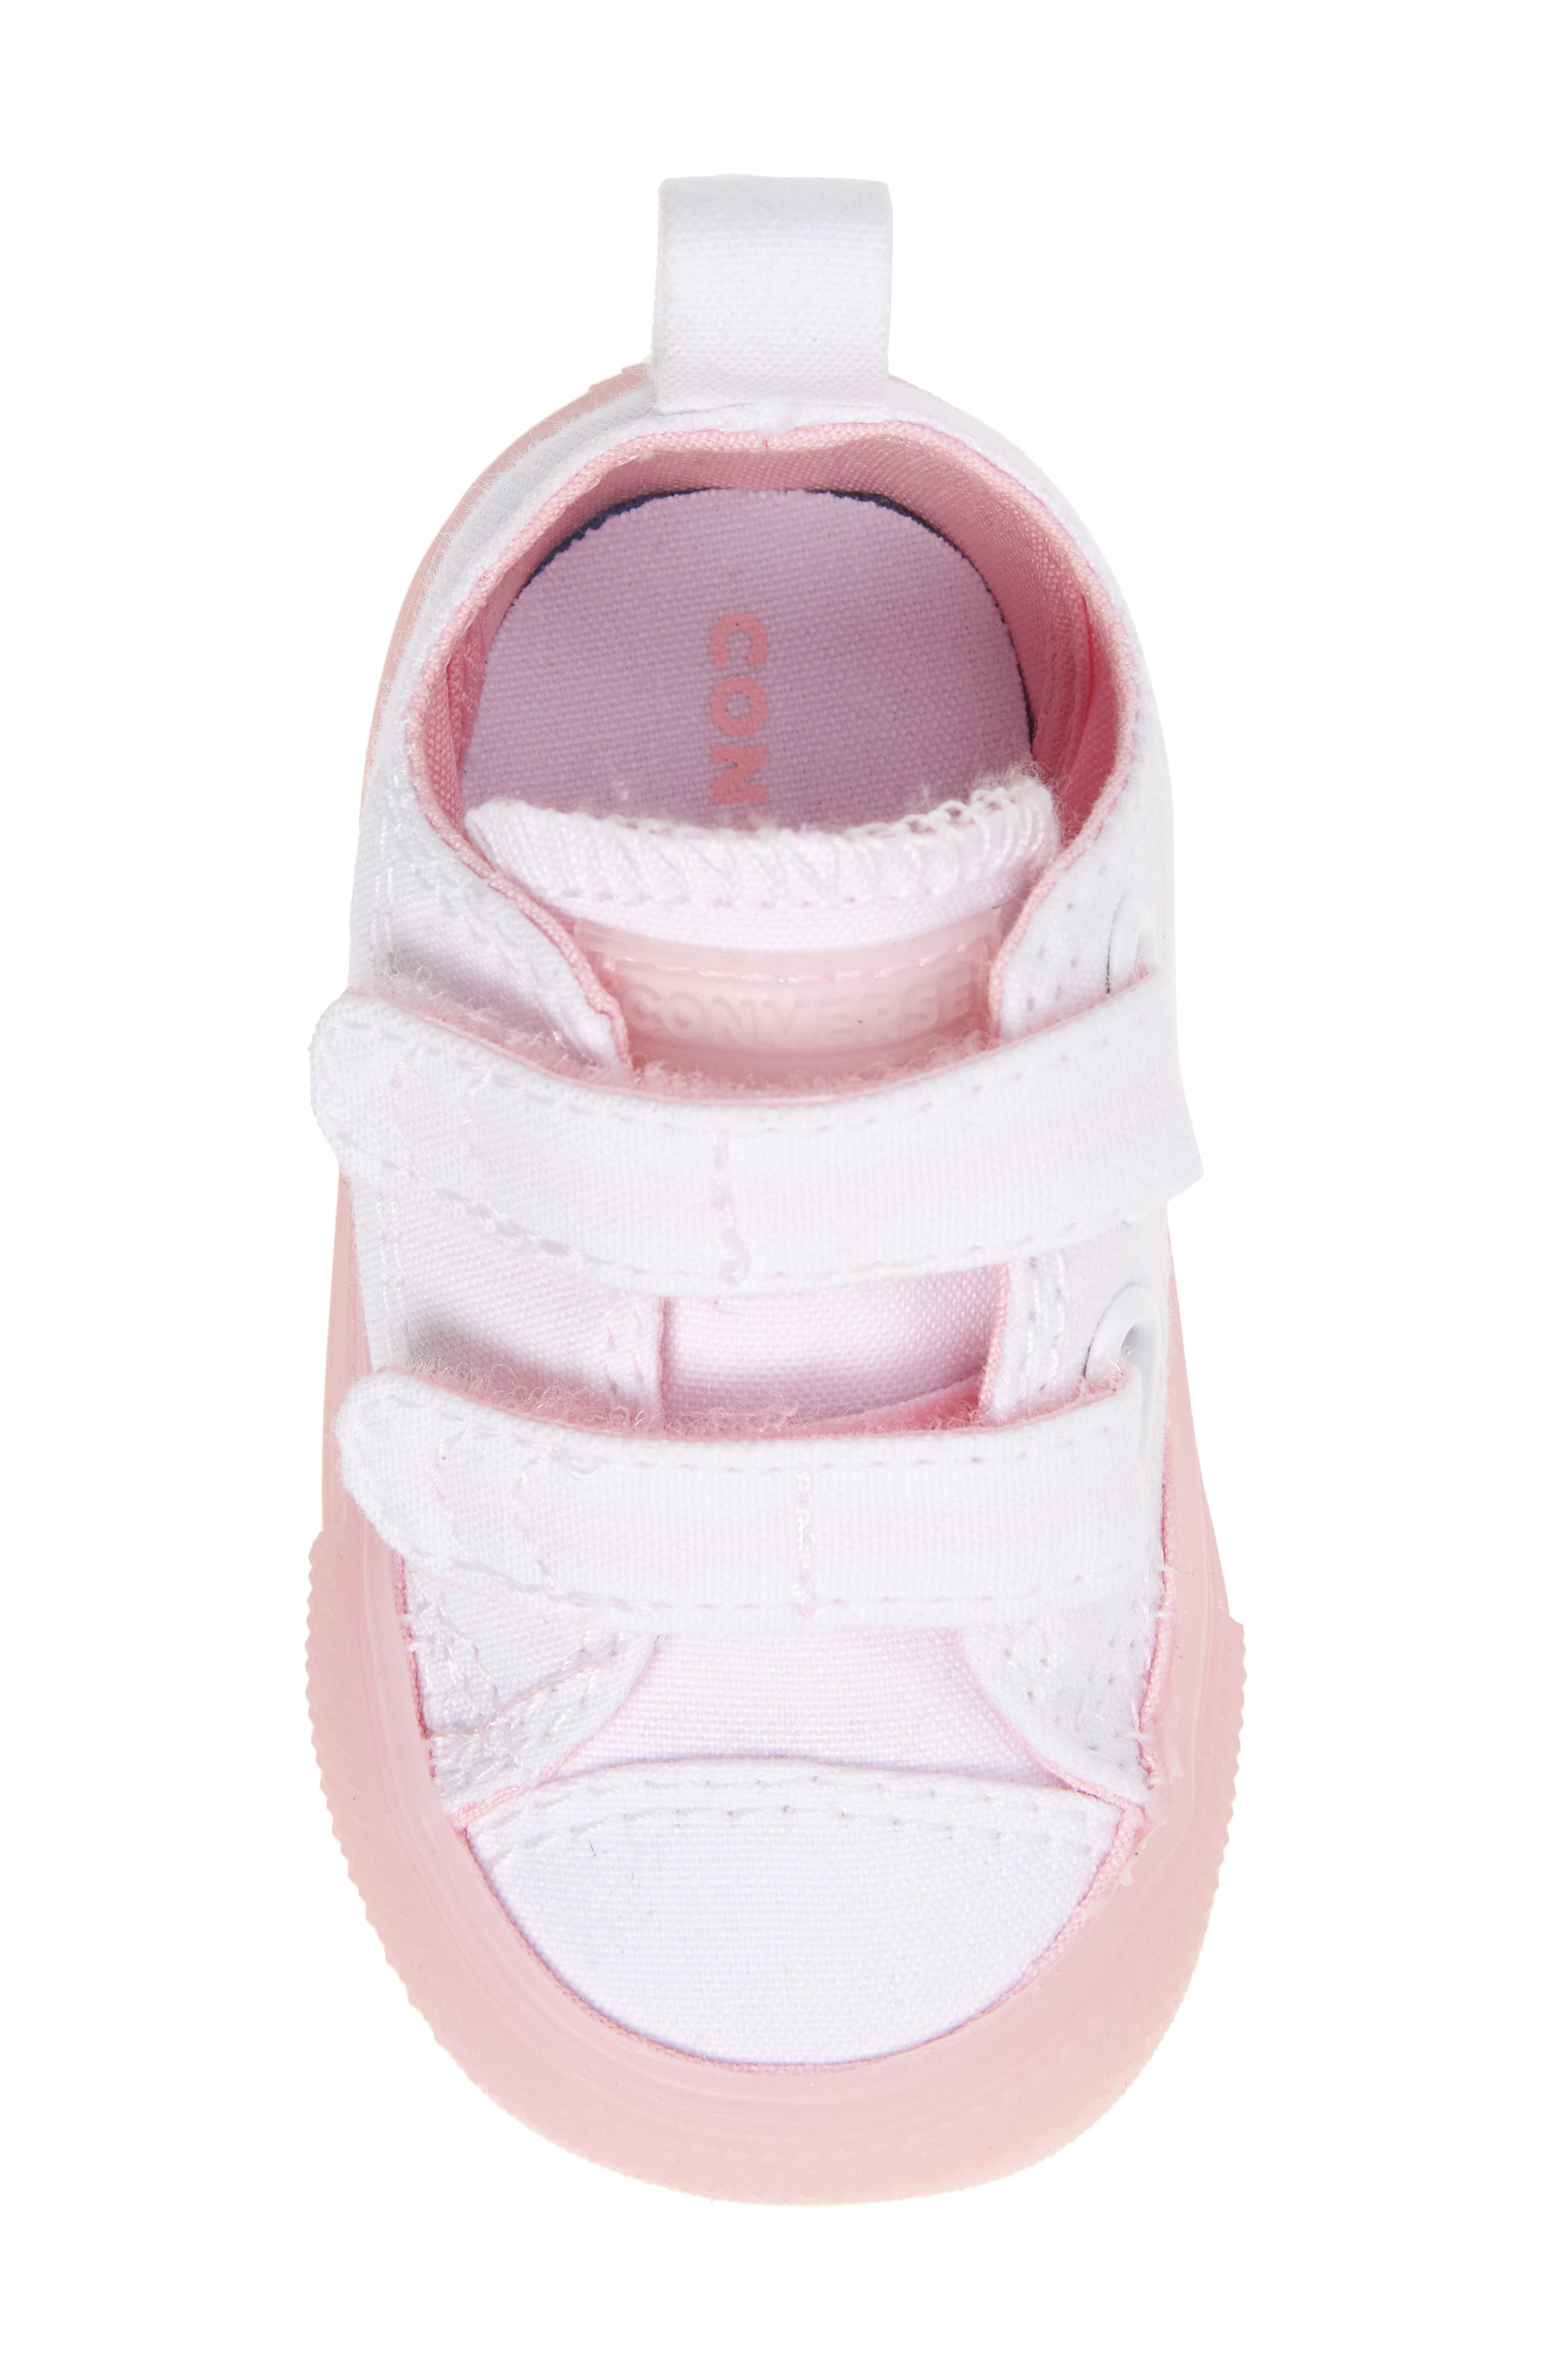 Chuck Taylor<sup>®</sup> All Star<sup>®</sup> Jelly Sneaker,                             Alternate thumbnail 5, color,                             White/ Cherry